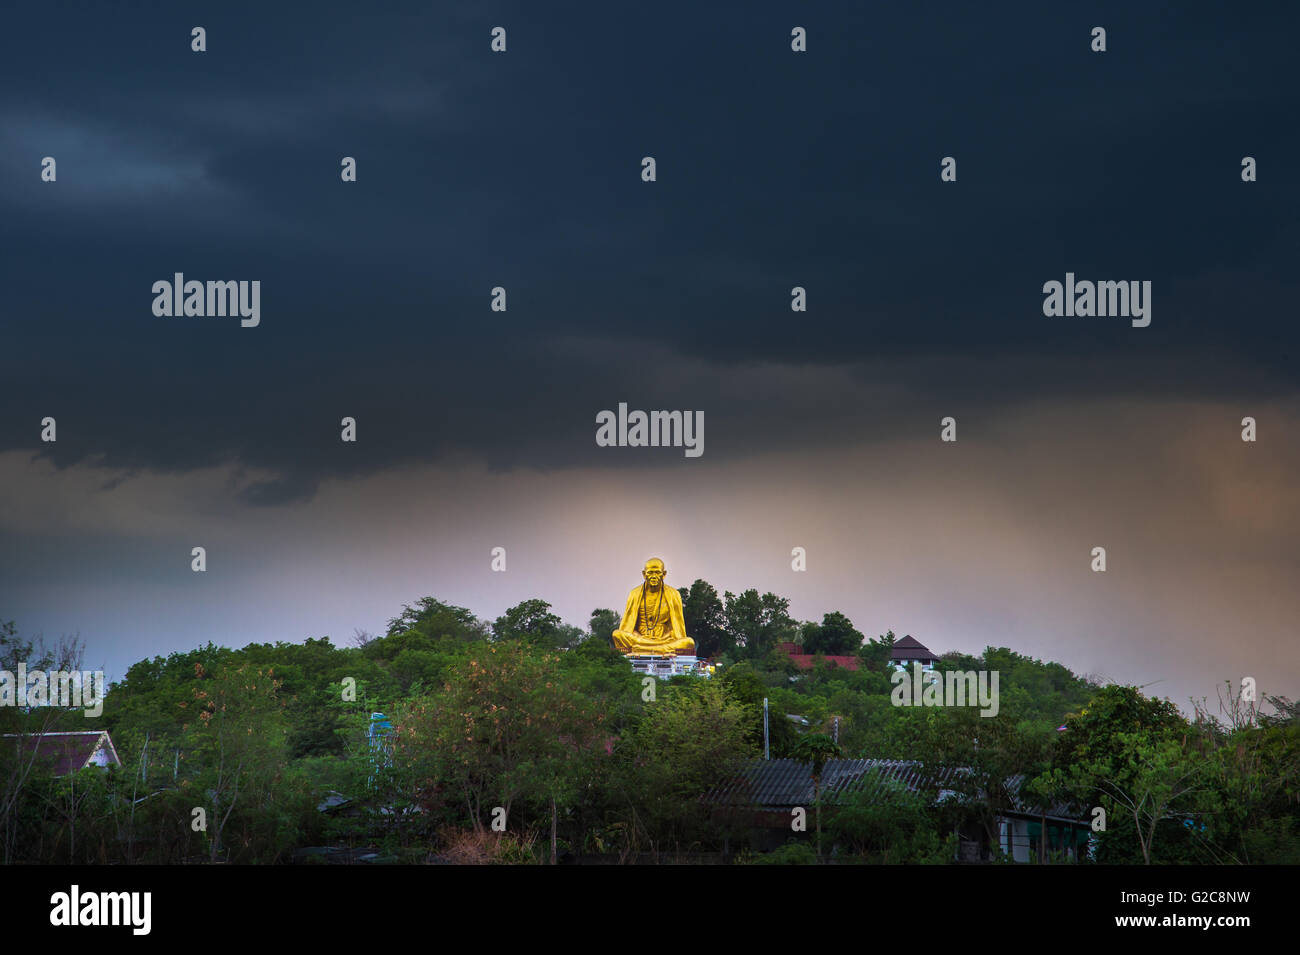 Wat Doi ti. Big Buddha built in approximately 2011 to the attraction of Lamphun,Thailand. - Stock Image